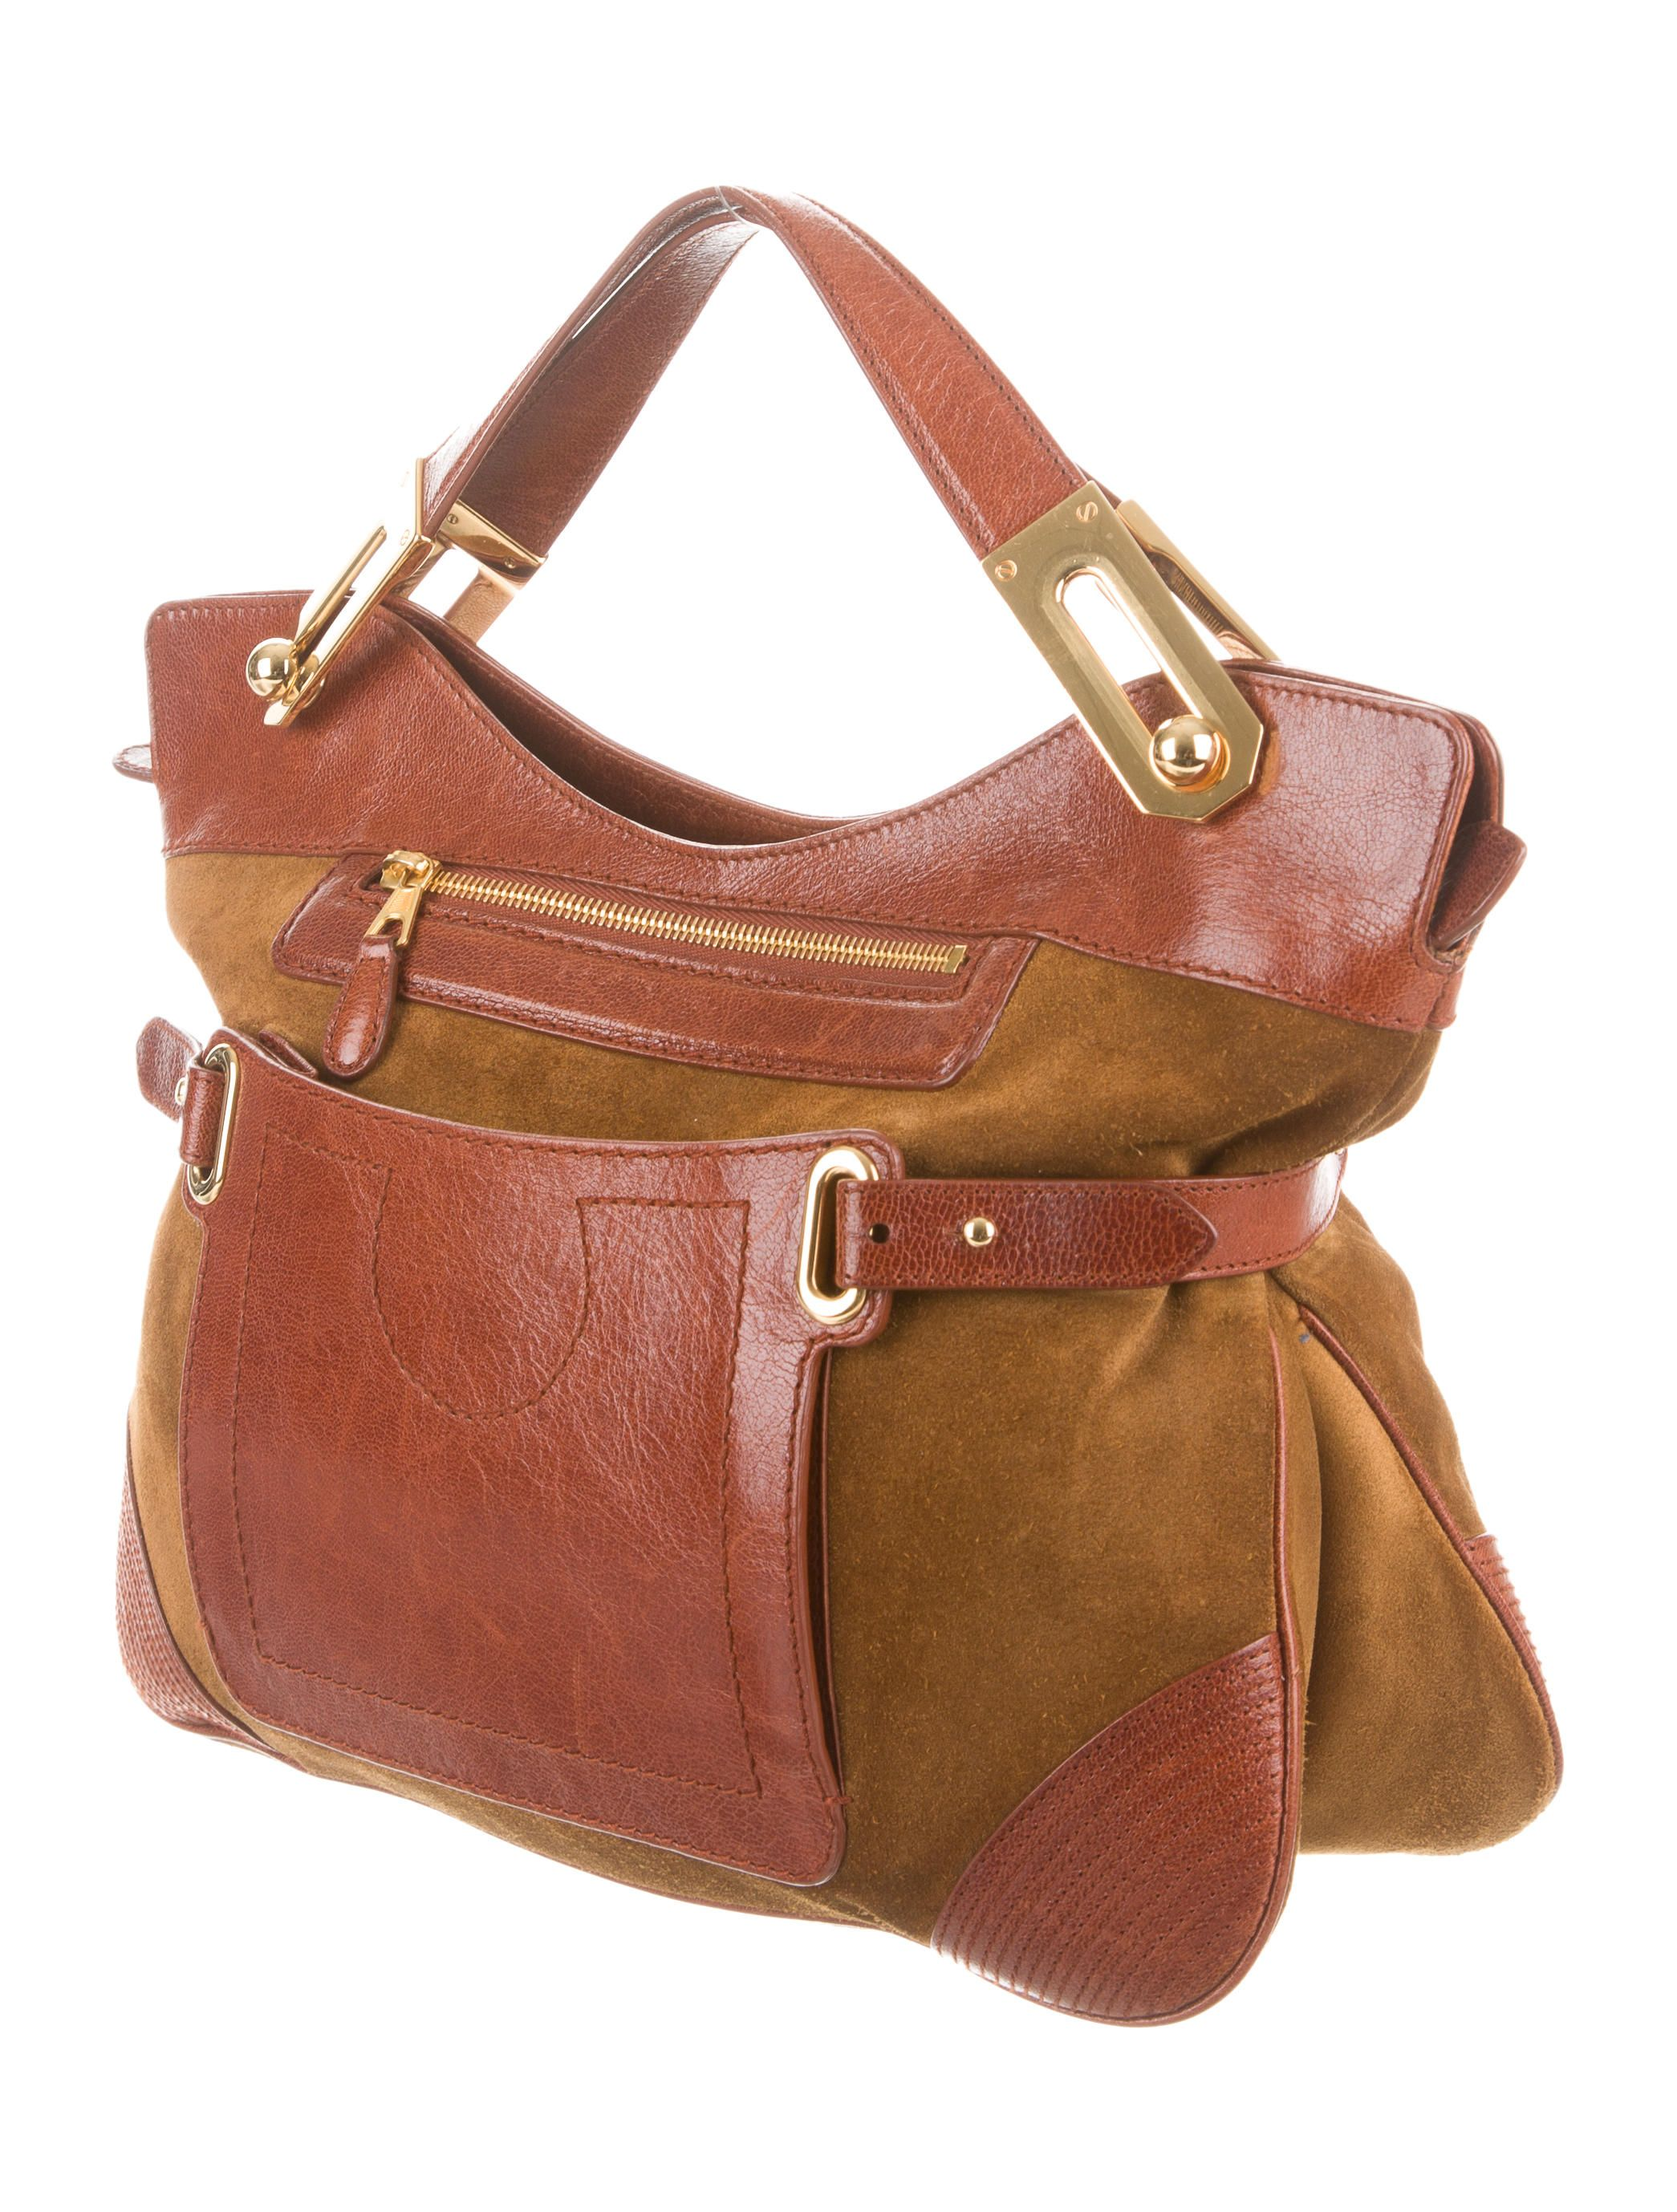 967c0fecae Olive brown suede Balenciaga handle bag with gold-tone hardware, brown  leather trim,